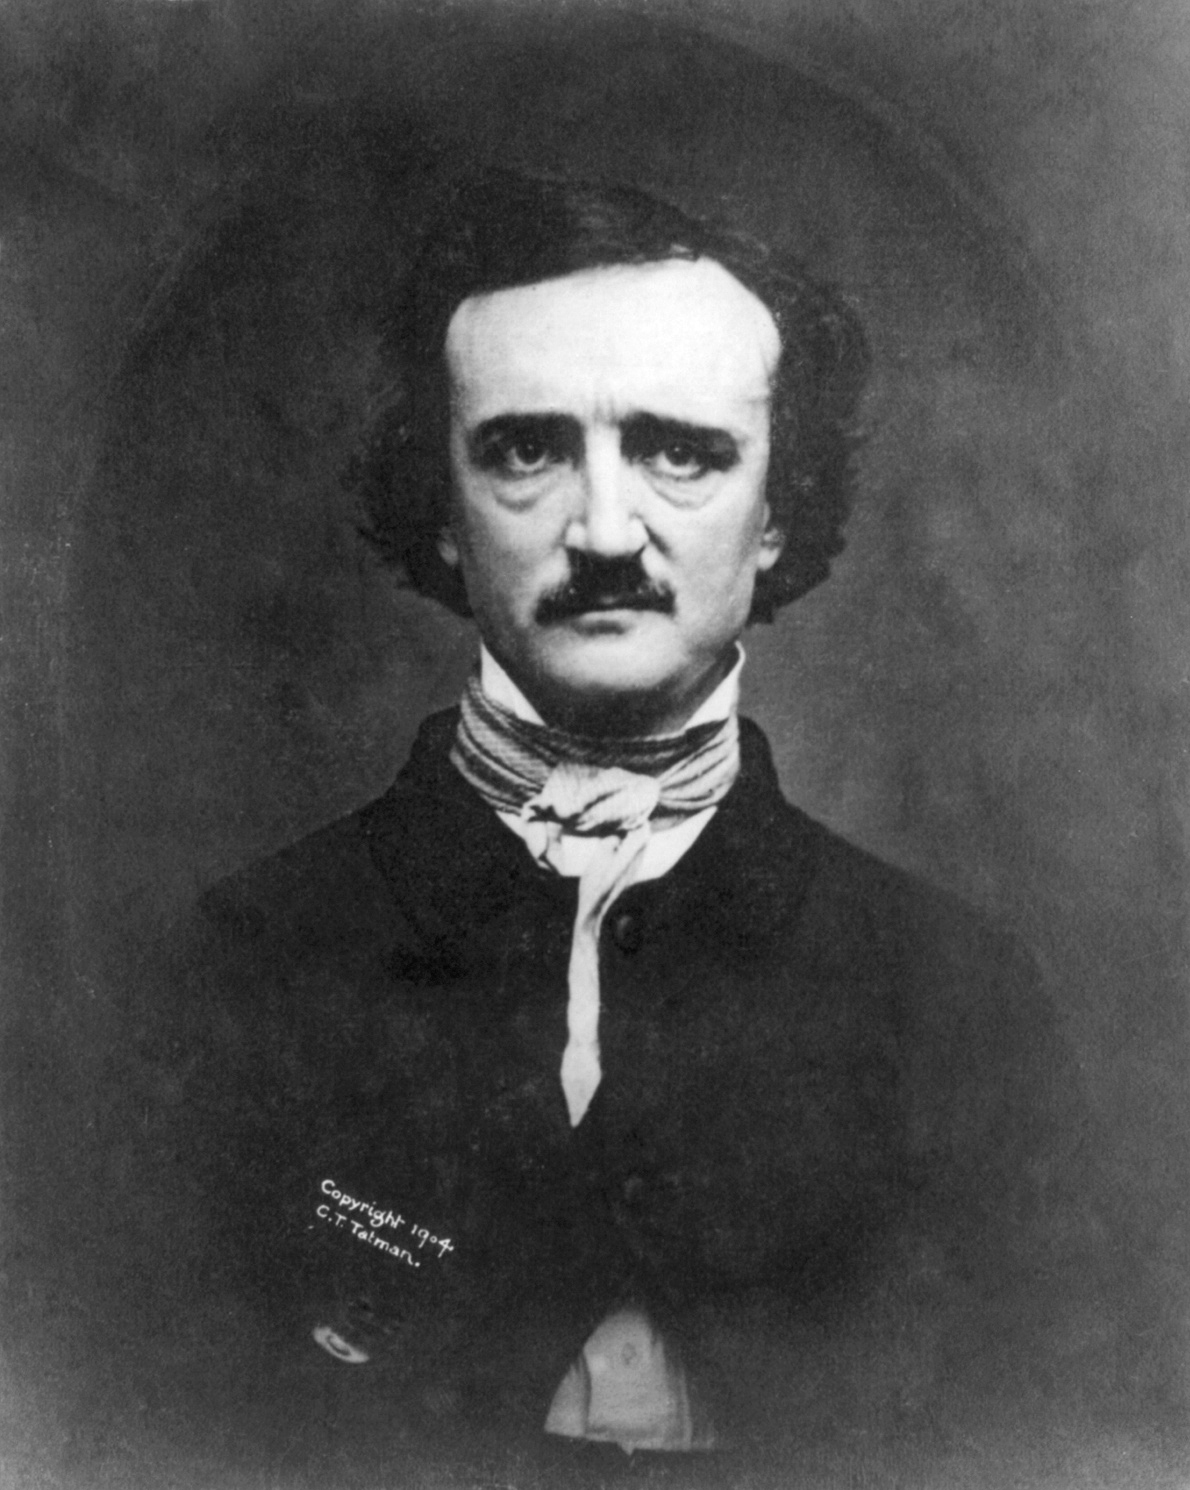 Masters of the Pen: An Evening with Edgar Allan Poe directed by Gwen Jones  Thursday, October 30 @ 7:30 Michael Nutt Mainstage, WICA  Tickets : $10